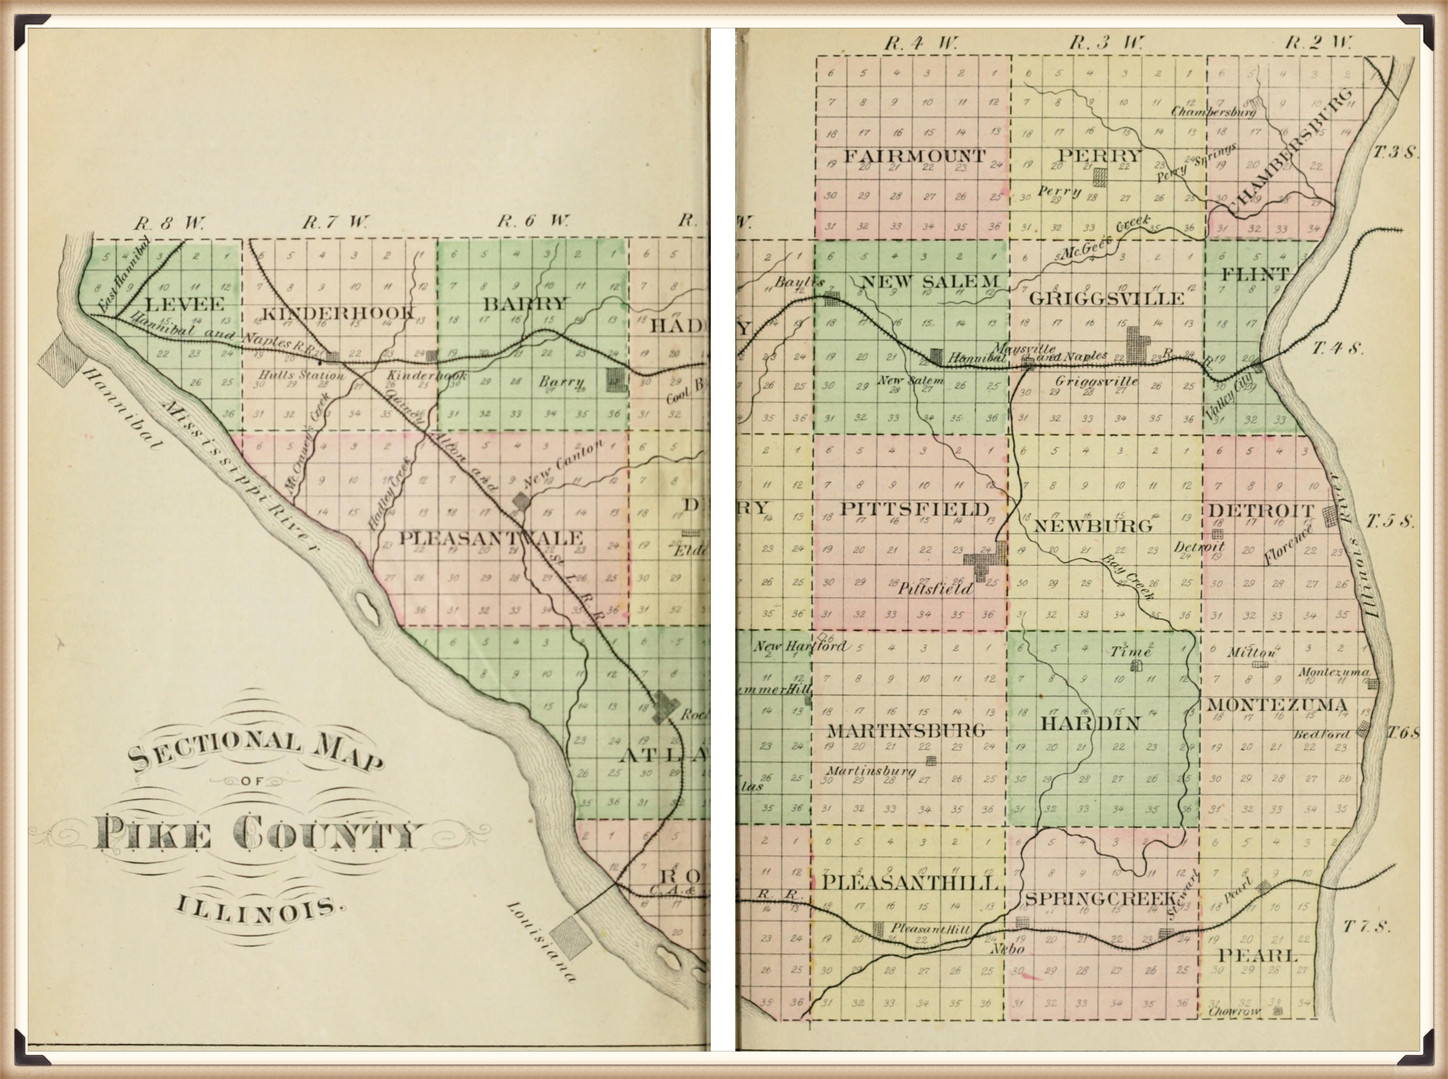 Pike County Illinois sectional map